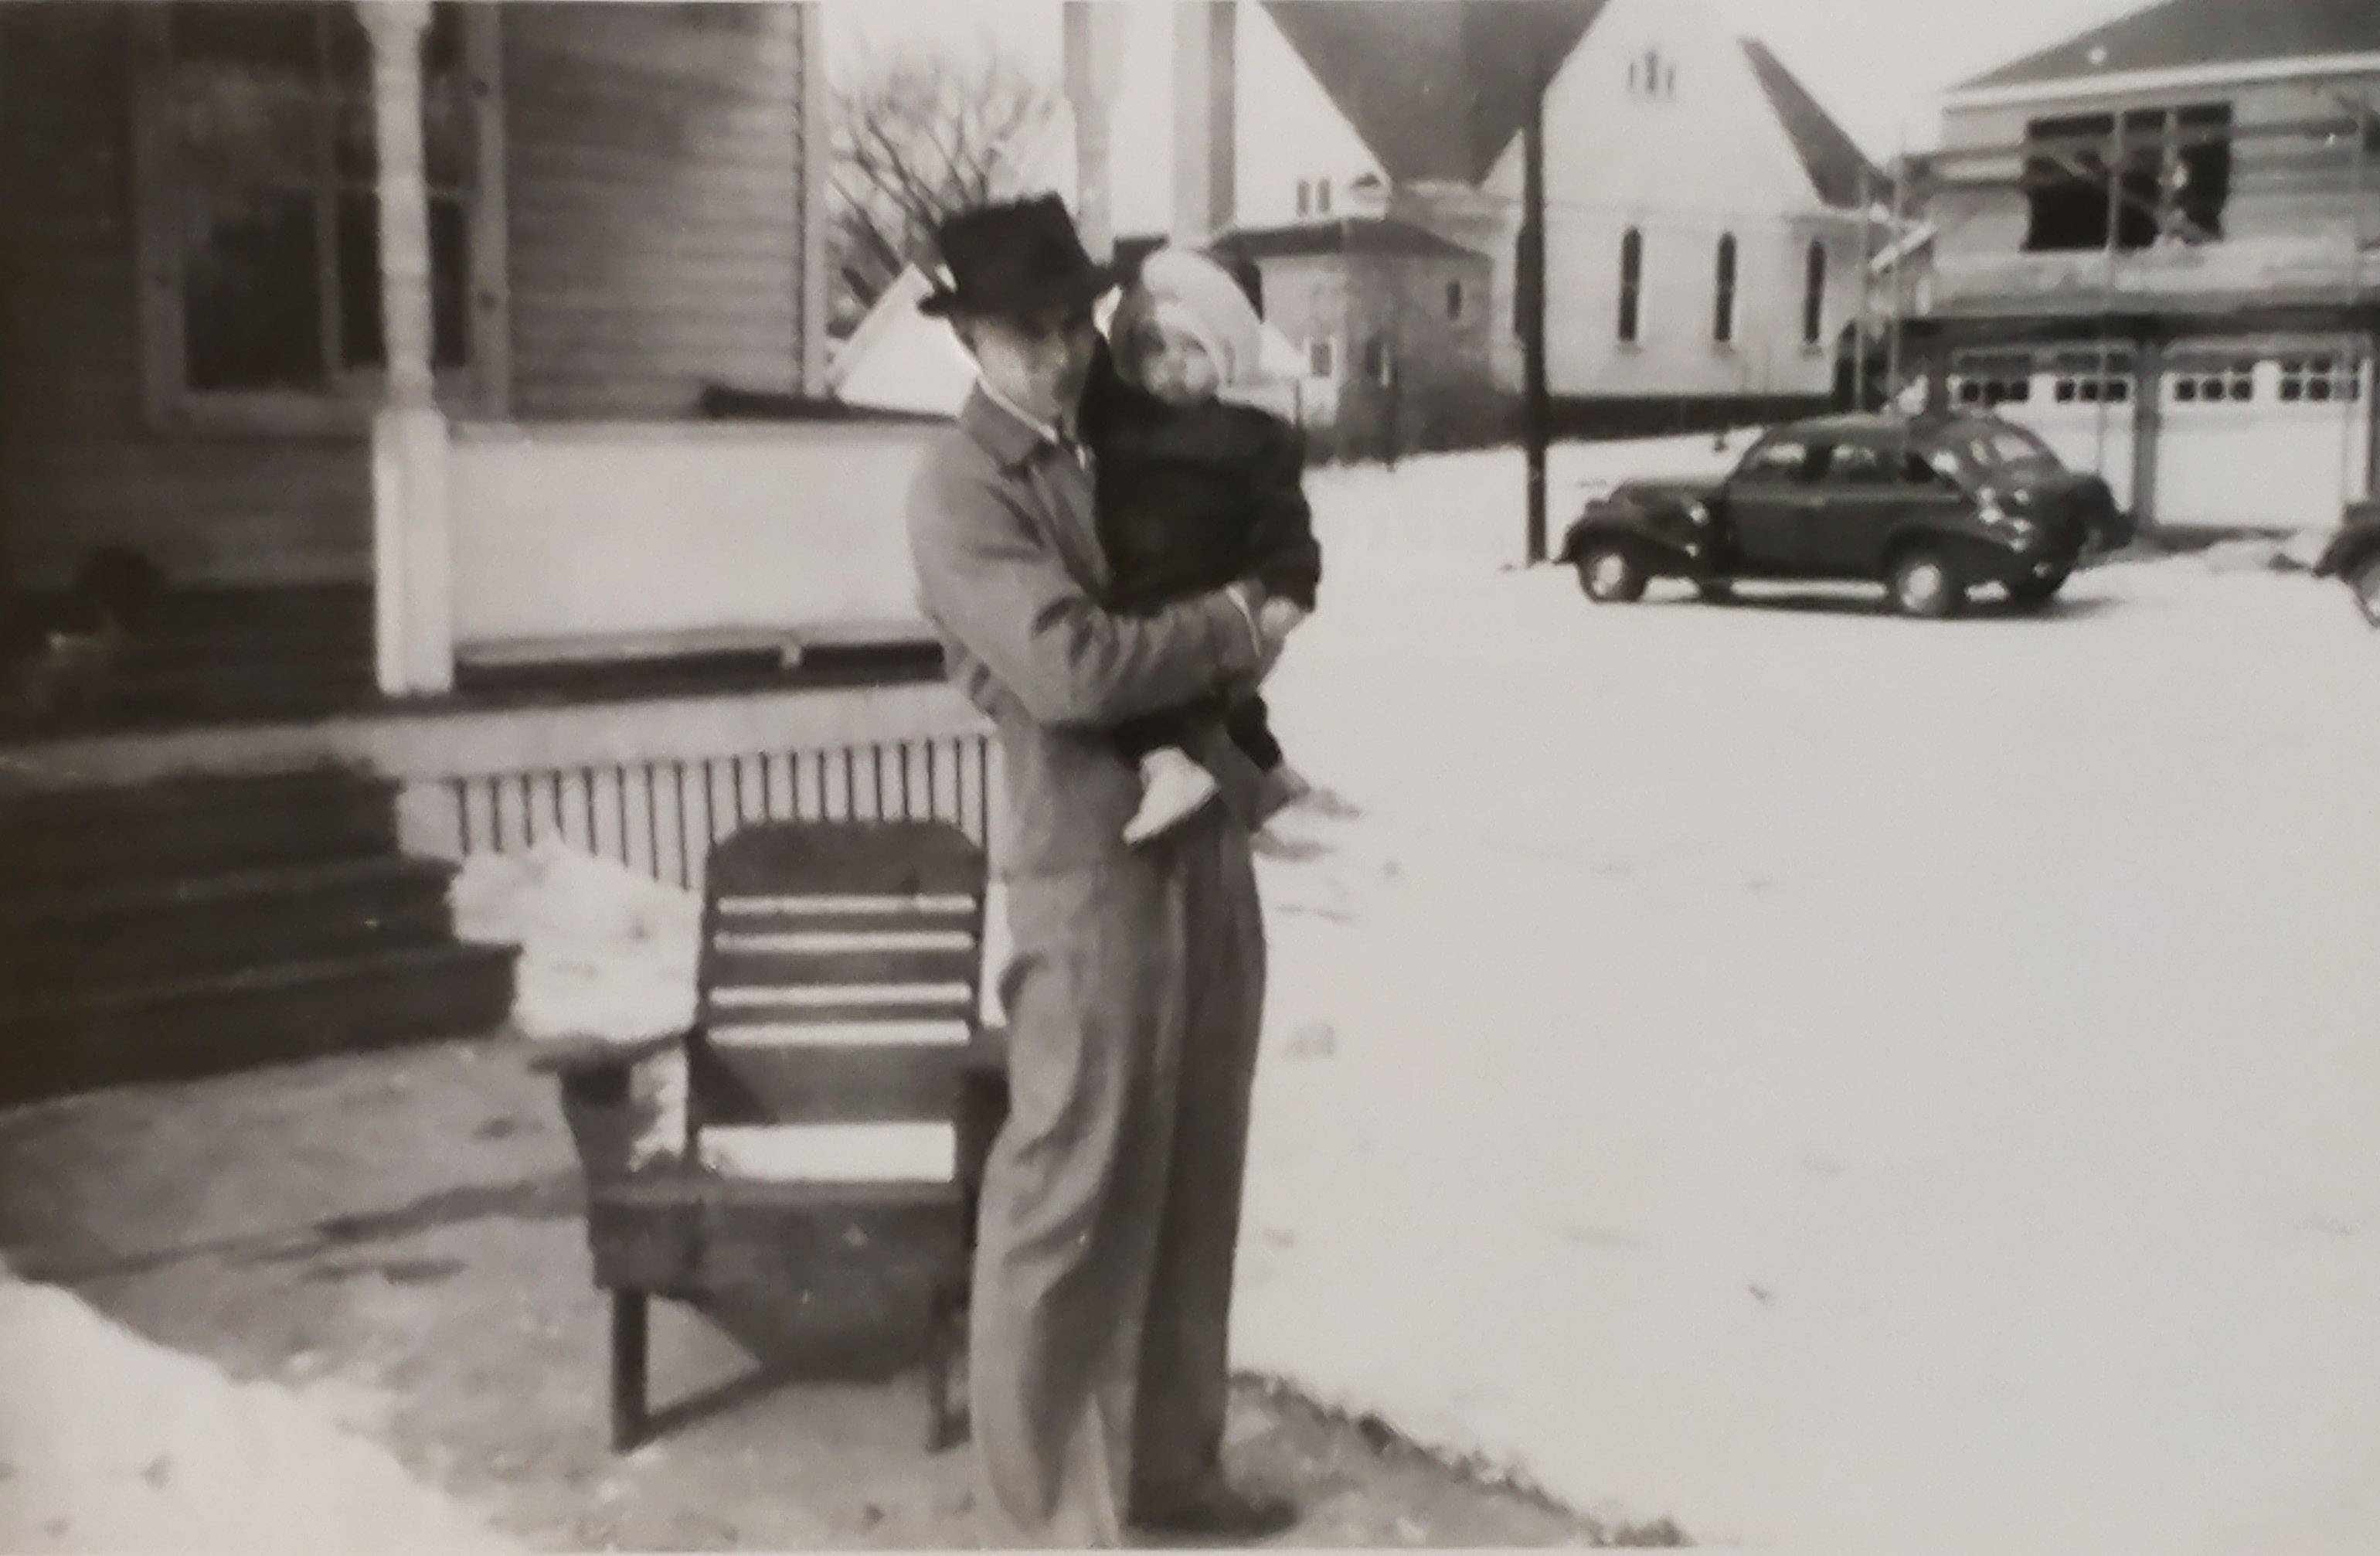 Mel Schroeder, 94, holds his daughter, Linda, in front of his childhood house at 118 Wool St. in Barrington in this 1949 photograph. He plans to watch as the house is moved Sunday down Main Street west to Barrington Hills.